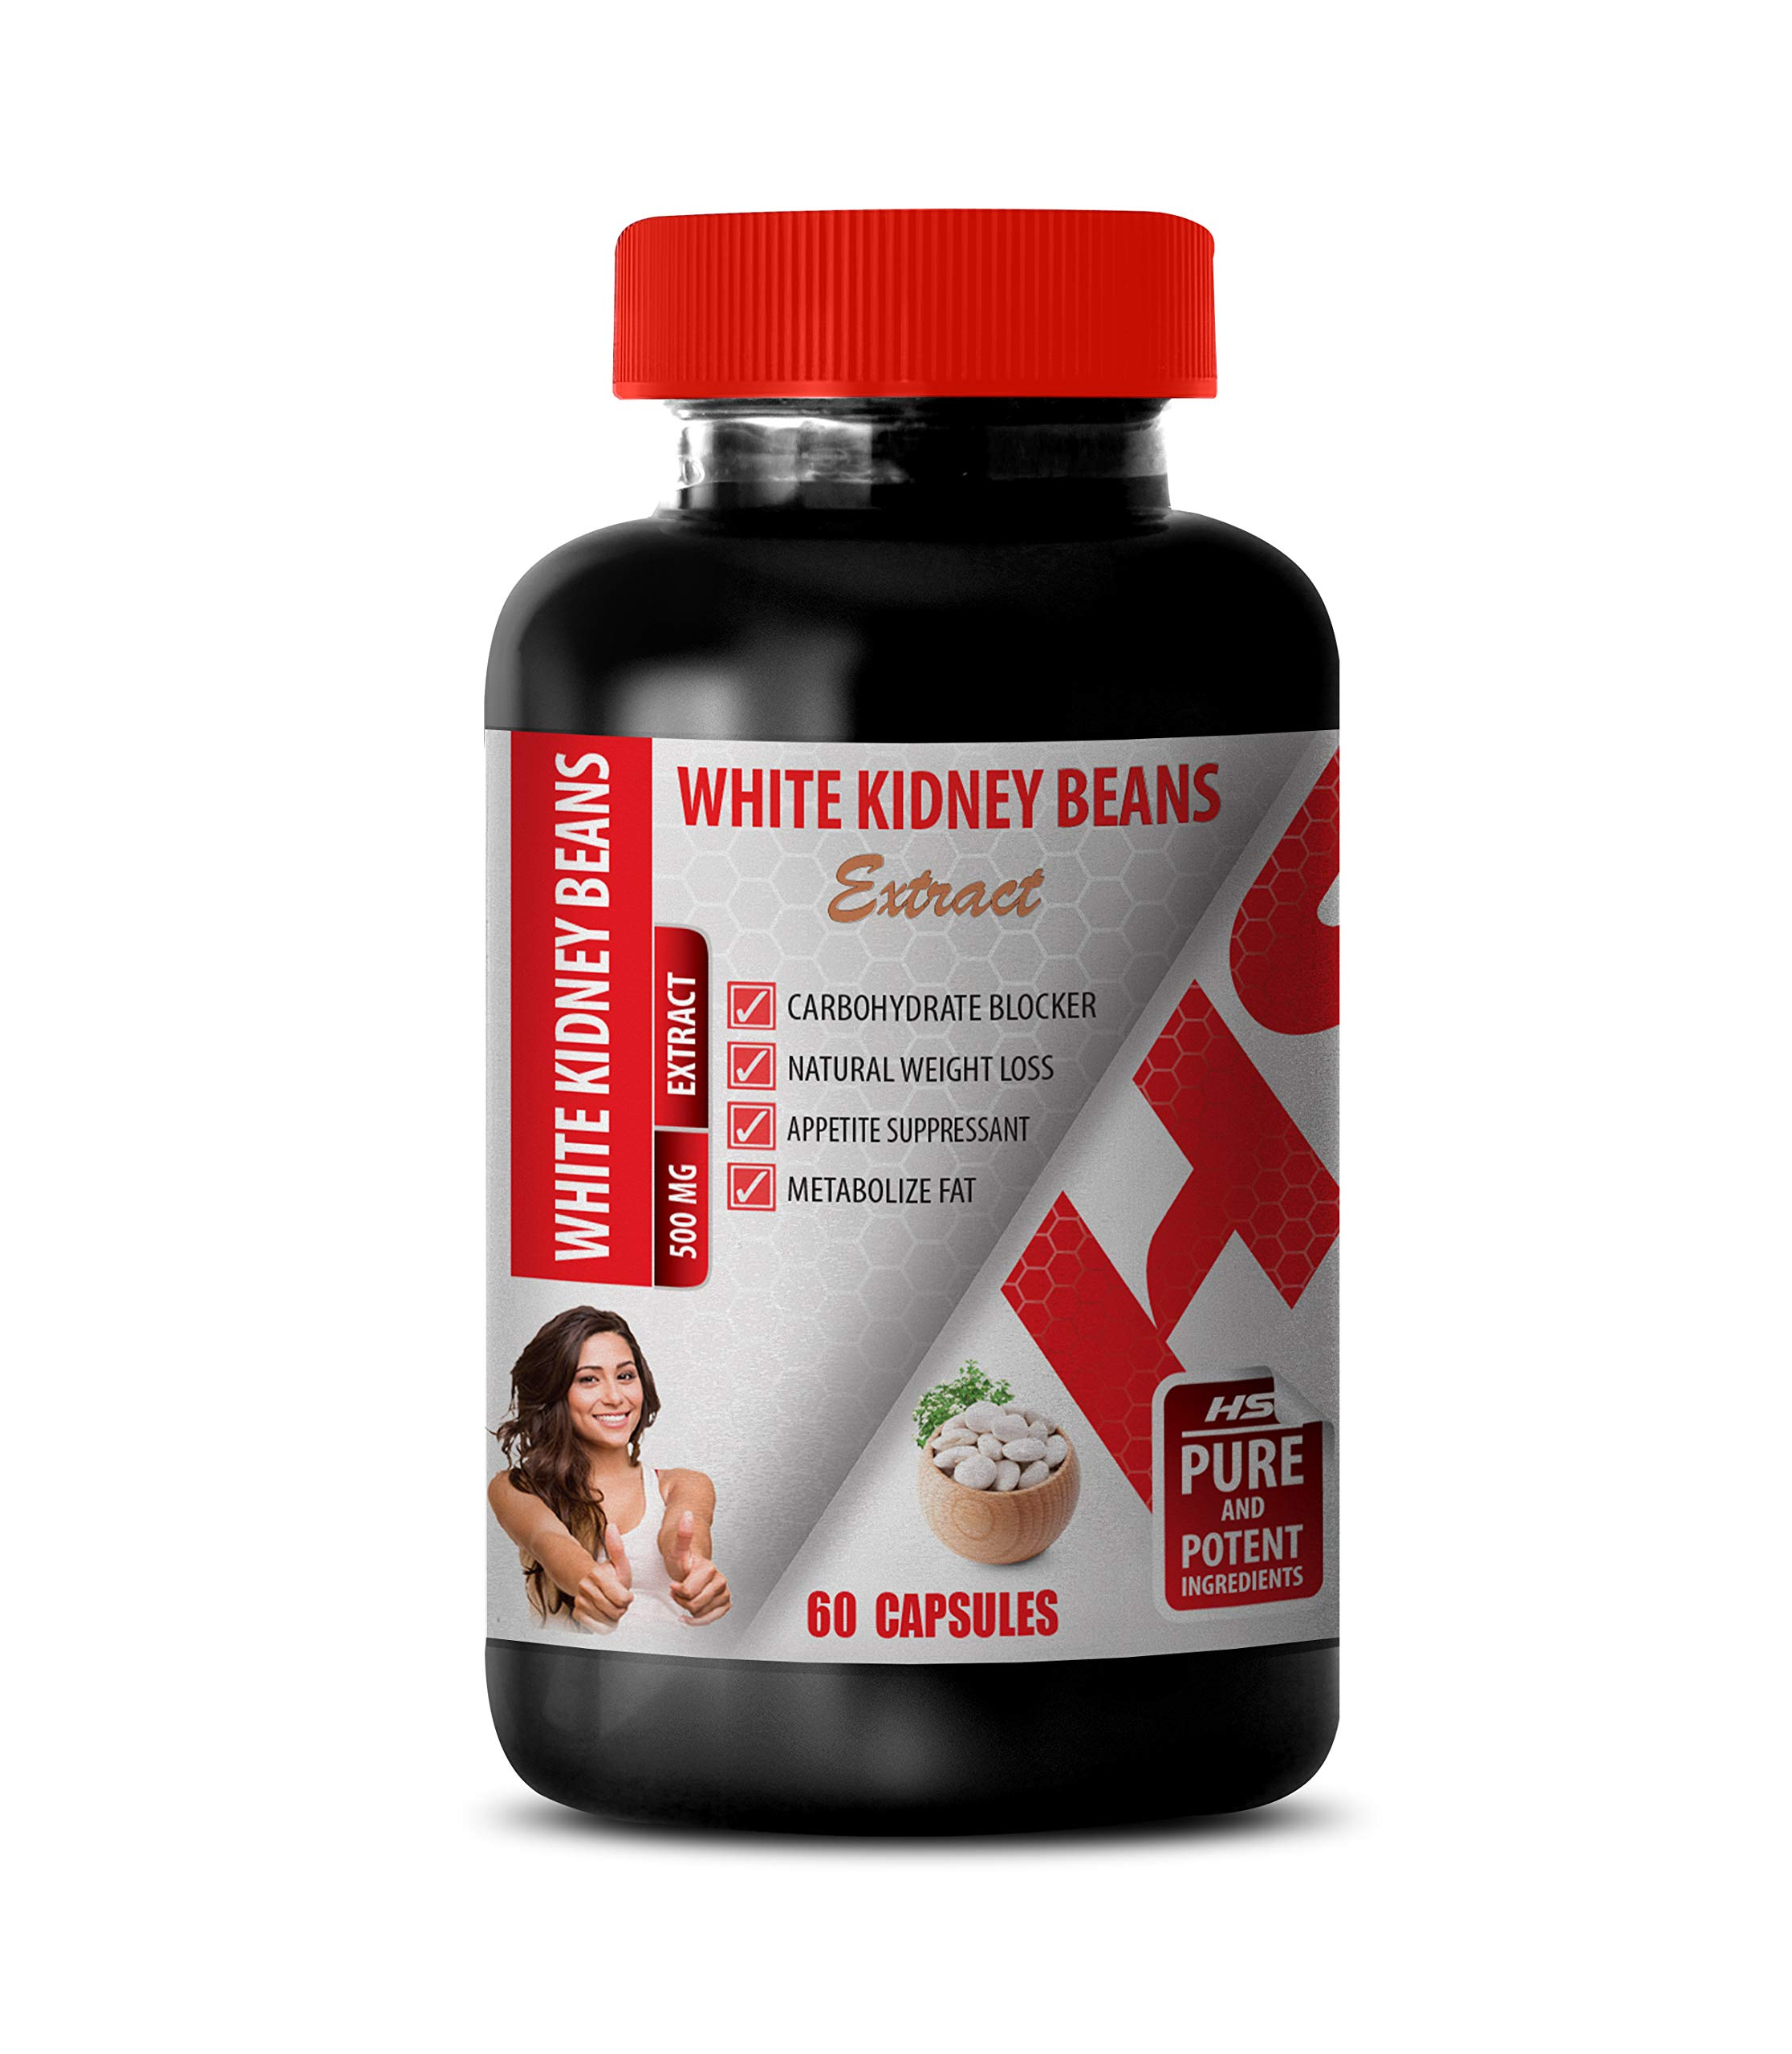 Metabolism Booster Weight Loss - White Kidney Beans 500MG Extract - White Kidney Bean Extract mega - 1 Bottle (60 Capsules)